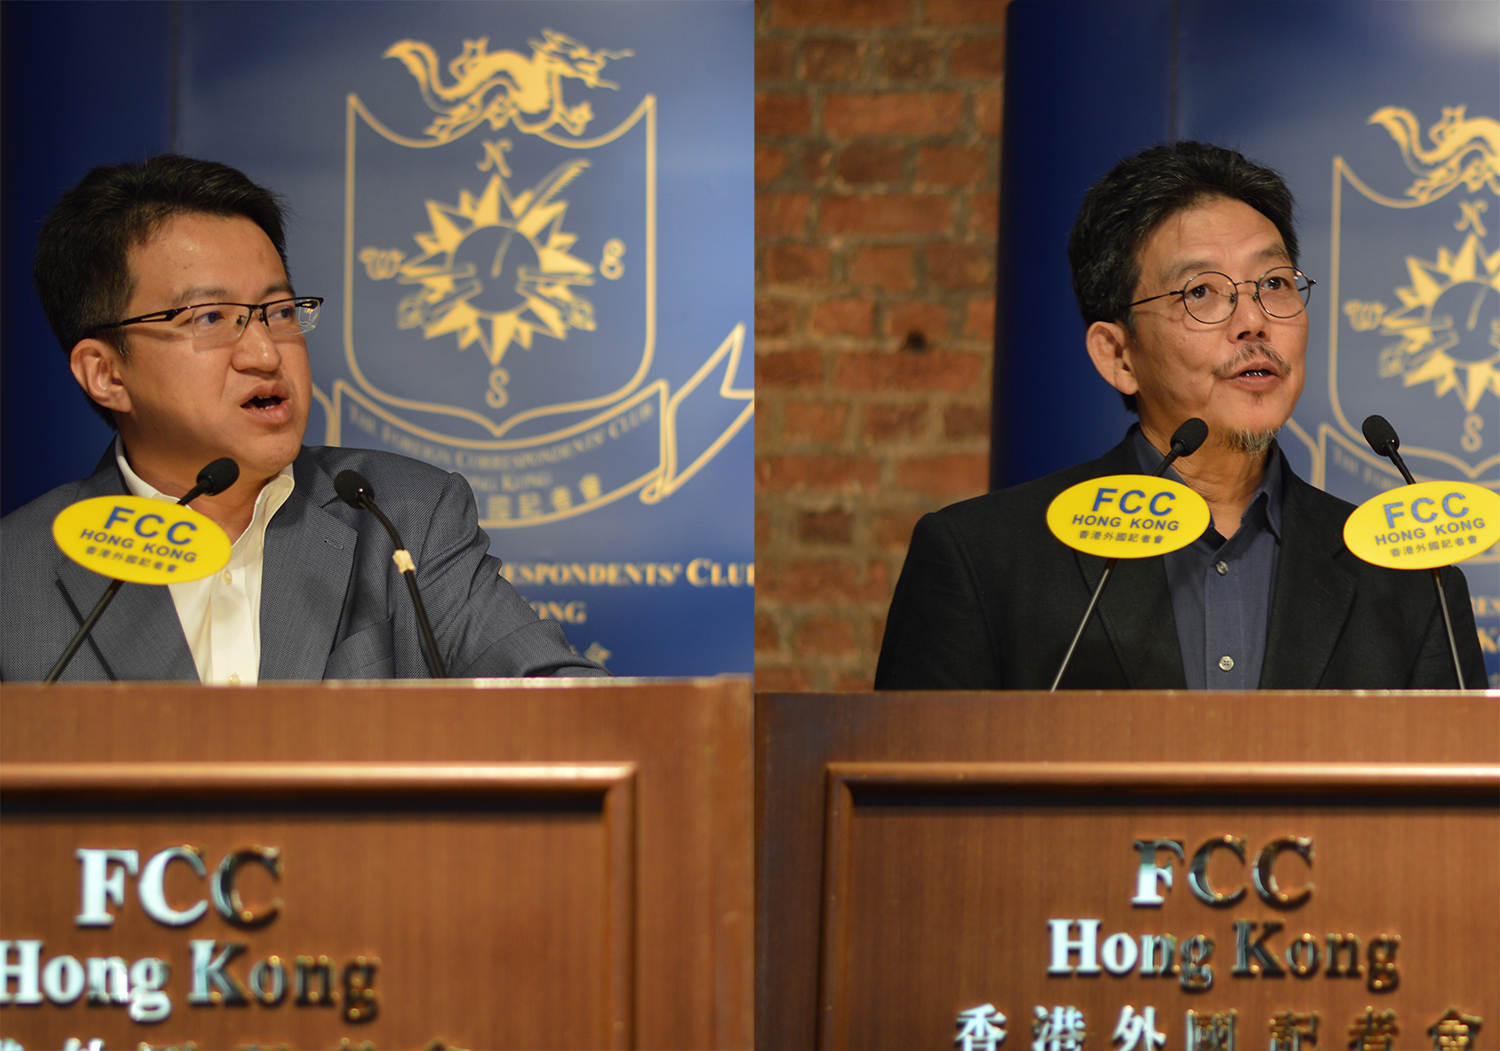 Left: Malaysia's Deputy Defence Minister Liew Chin Tong, and right, Penang Institute's Executive Director, Ooi Kee Beng, discussed the country's politics at the FCC. Photo: Sarah Graham/FCC